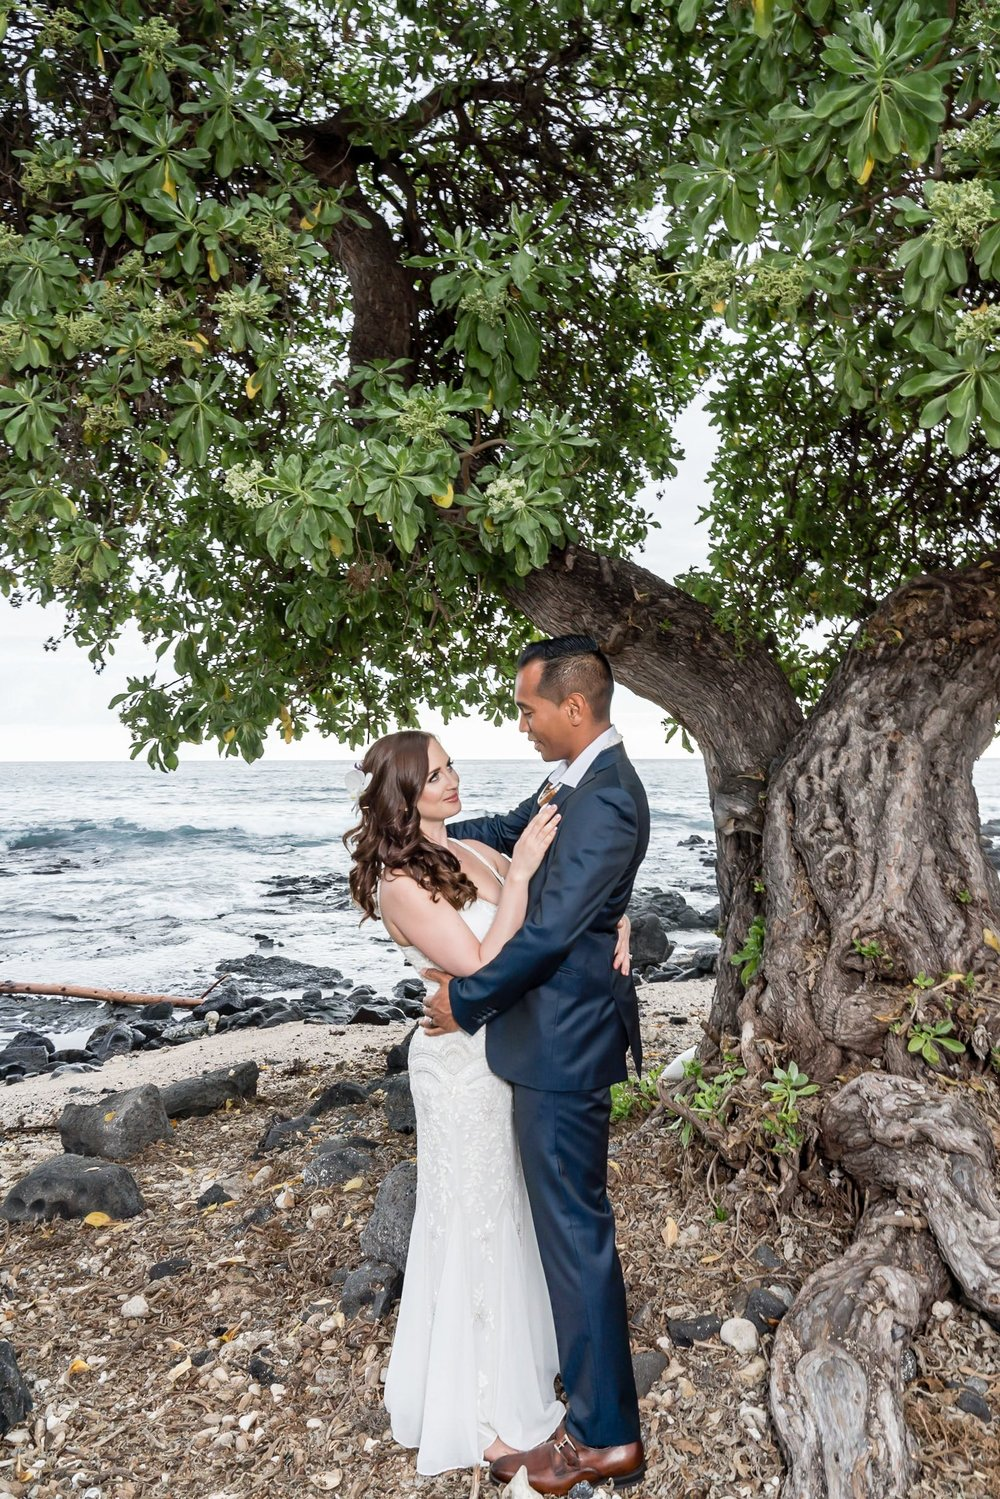 Big-Island-Hawaii-Jade-Keyes-Derrick-Alig-Daylight-Mind-Kailua-Kona-Hawaii-Wedding3.jpg